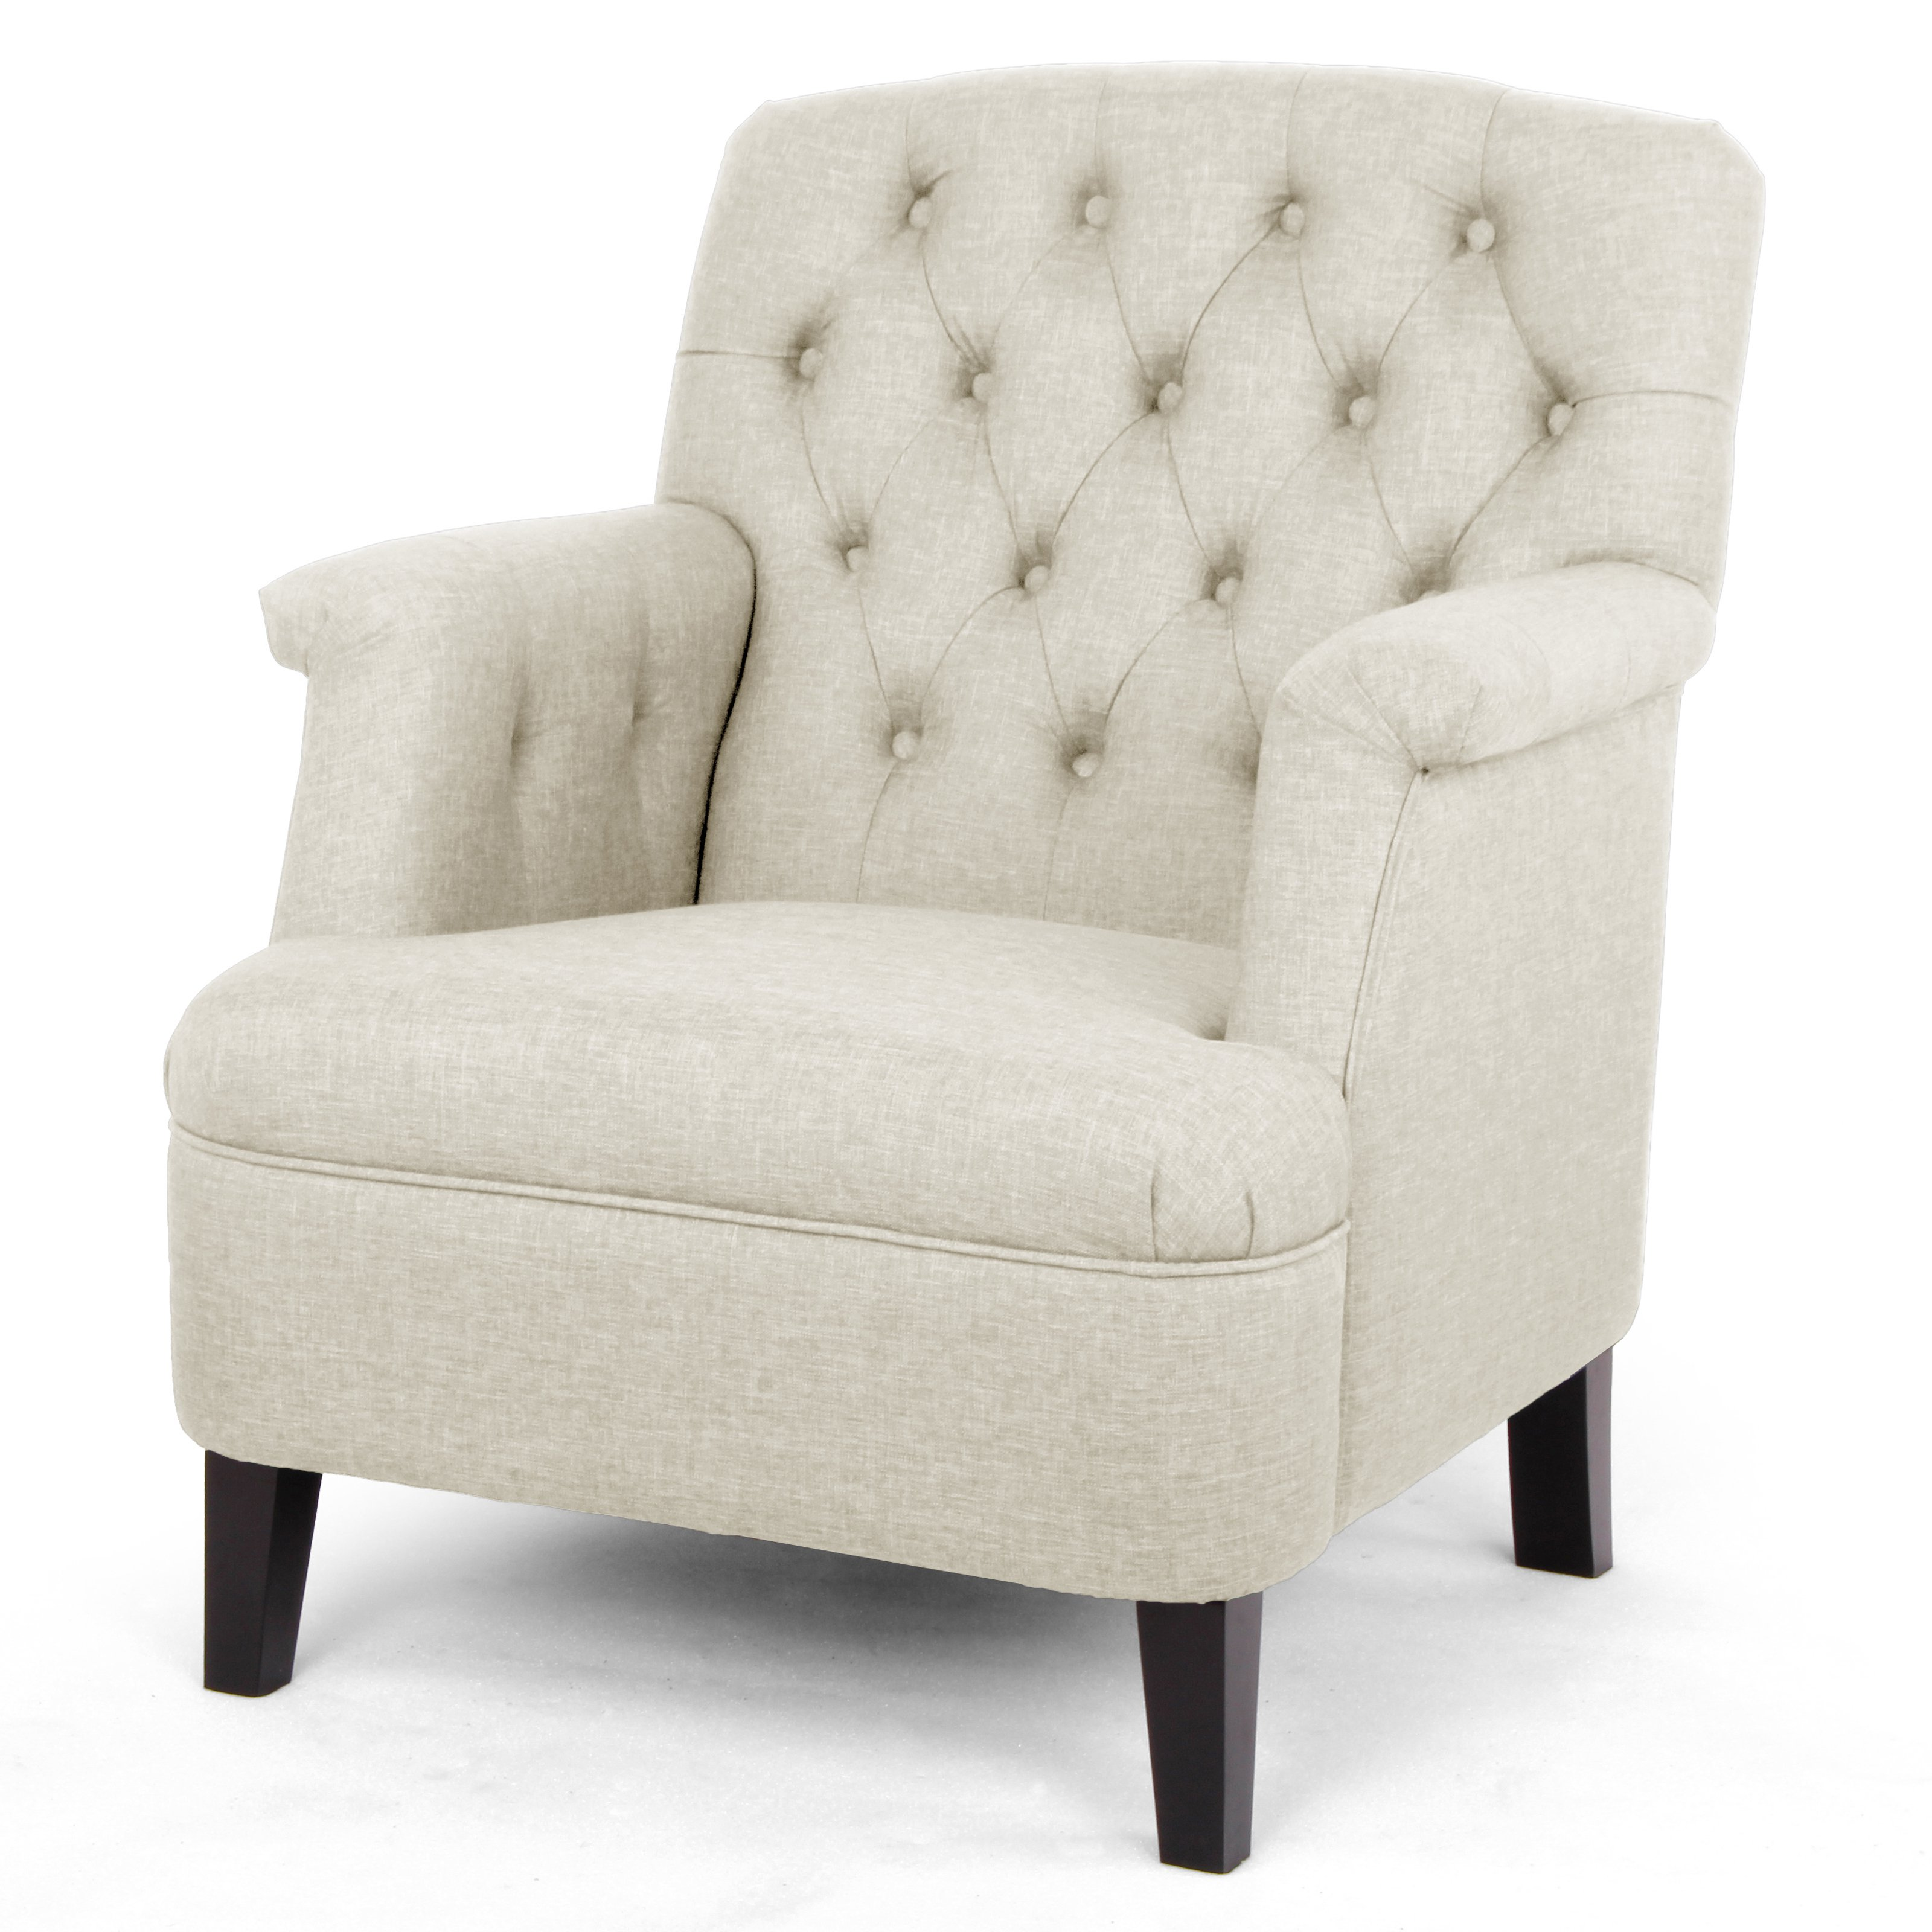 Baxton Studio Jester Classic Retro Modern Contemporary Beige Fabric Upholstered Button-Tufted Armchair